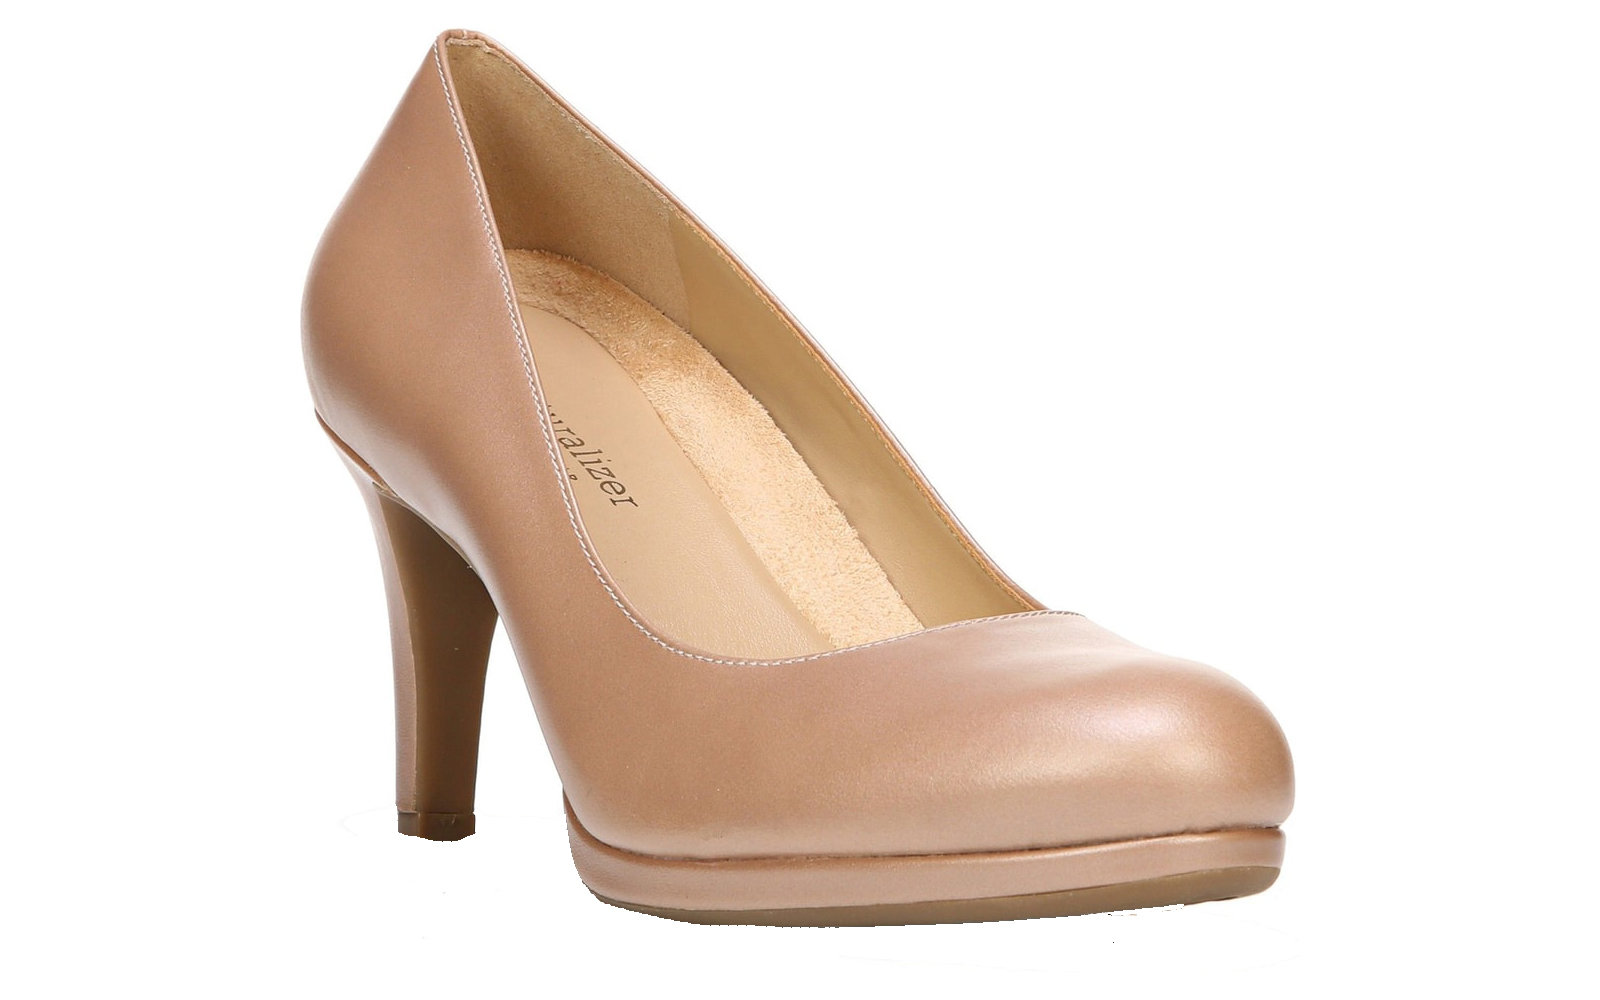 Most Comfortable Round-Toe Pump: Naturalizers Michelle Pump